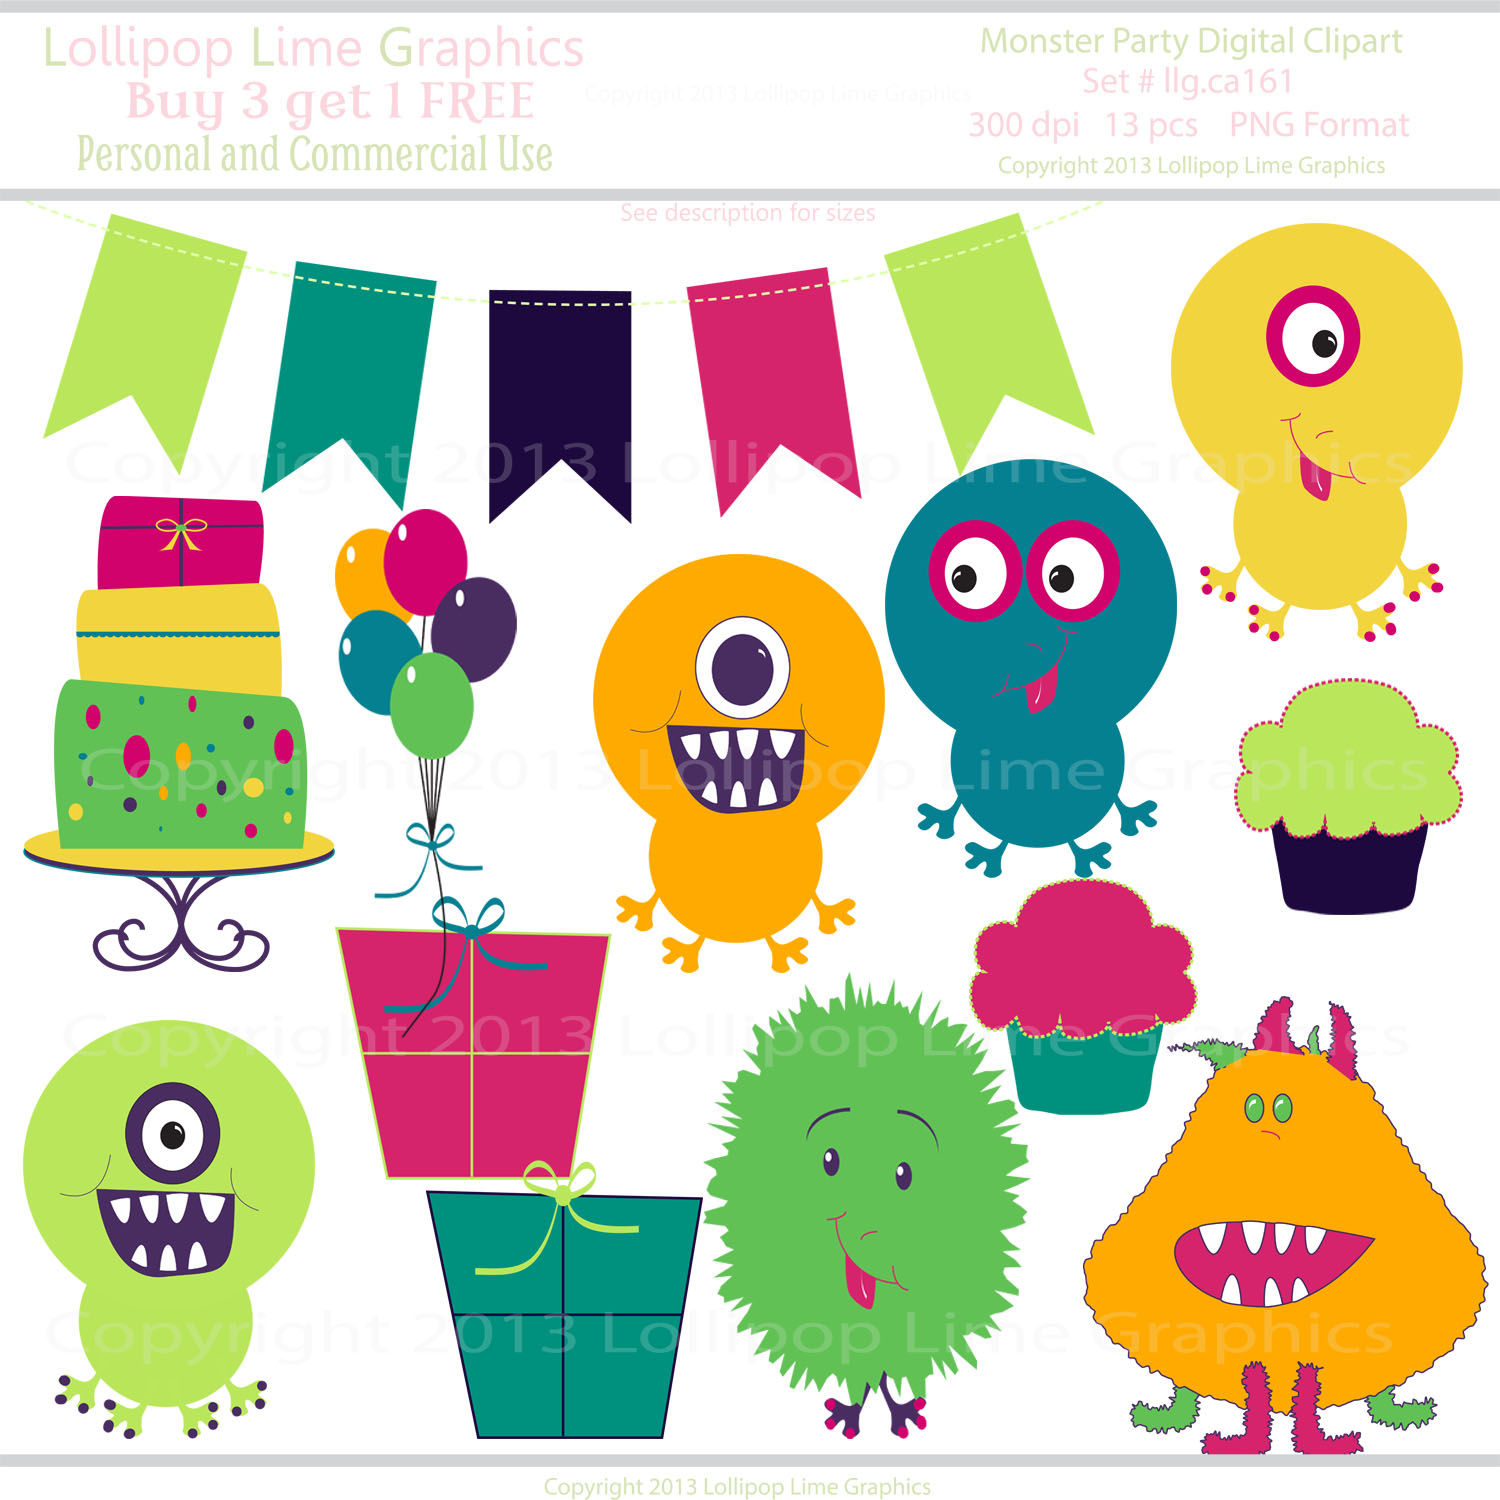 Cute Little Monster Party Digital Clipart Monsters Balloons Cake